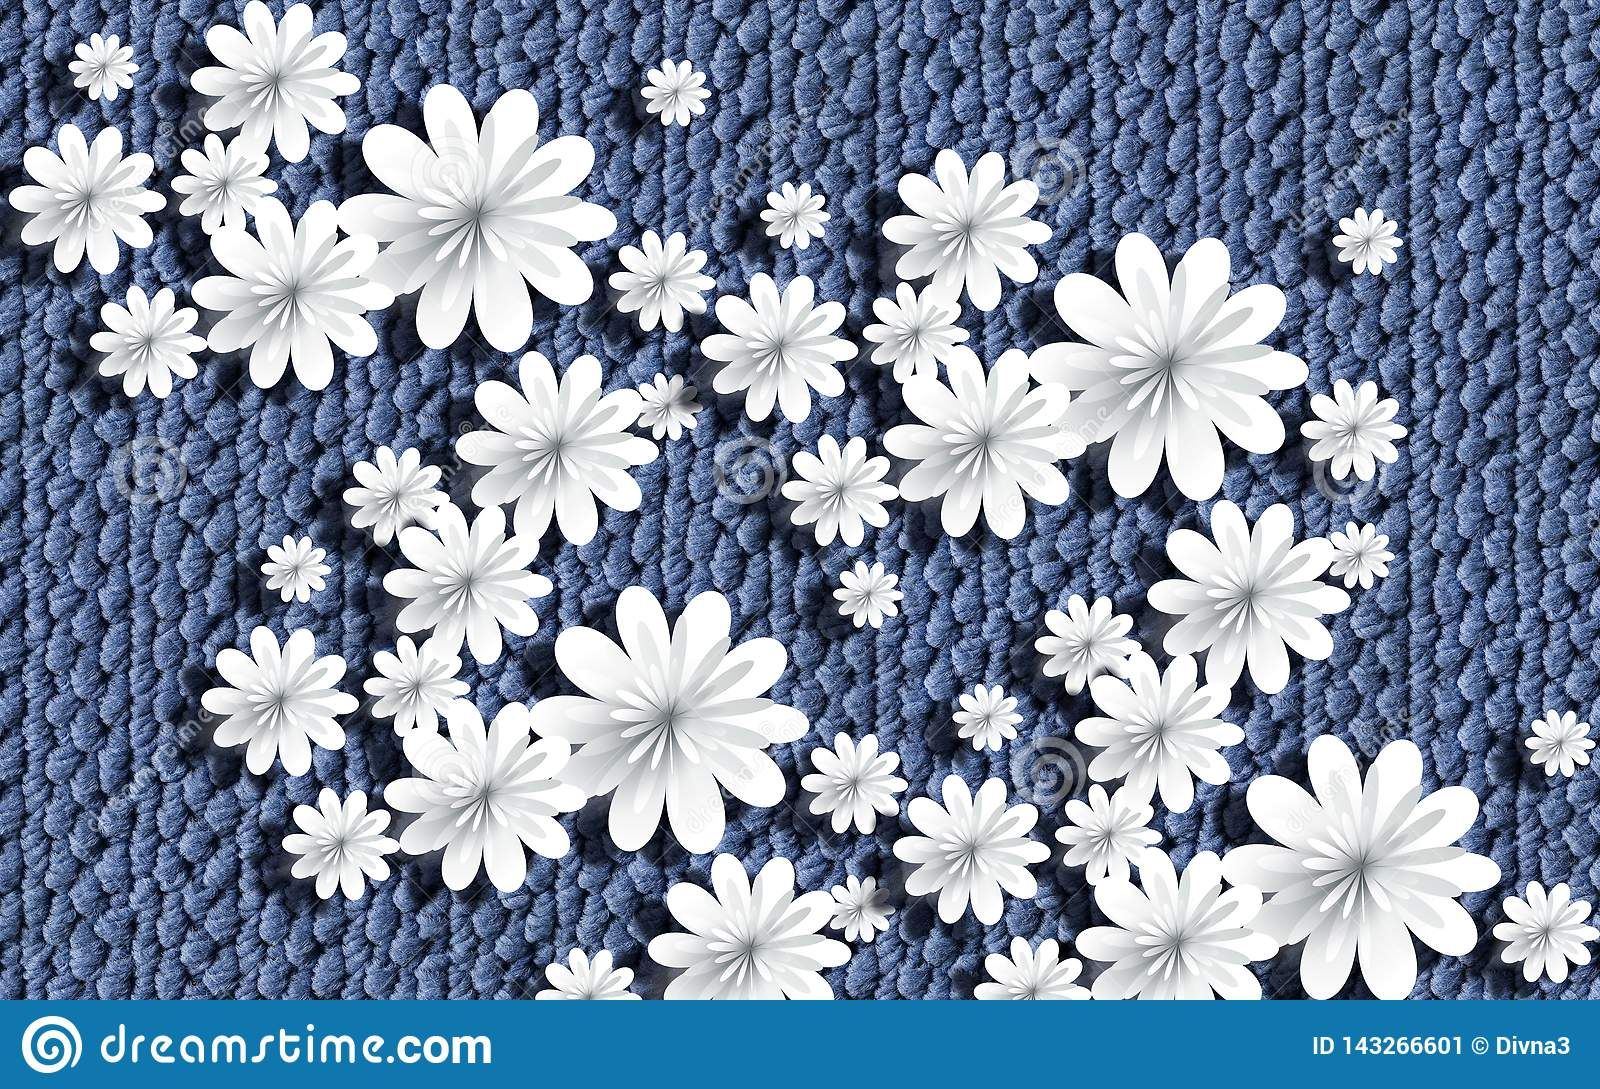 3d Wallpaper Paper Flowers On Knitted Texture Stock Illustration